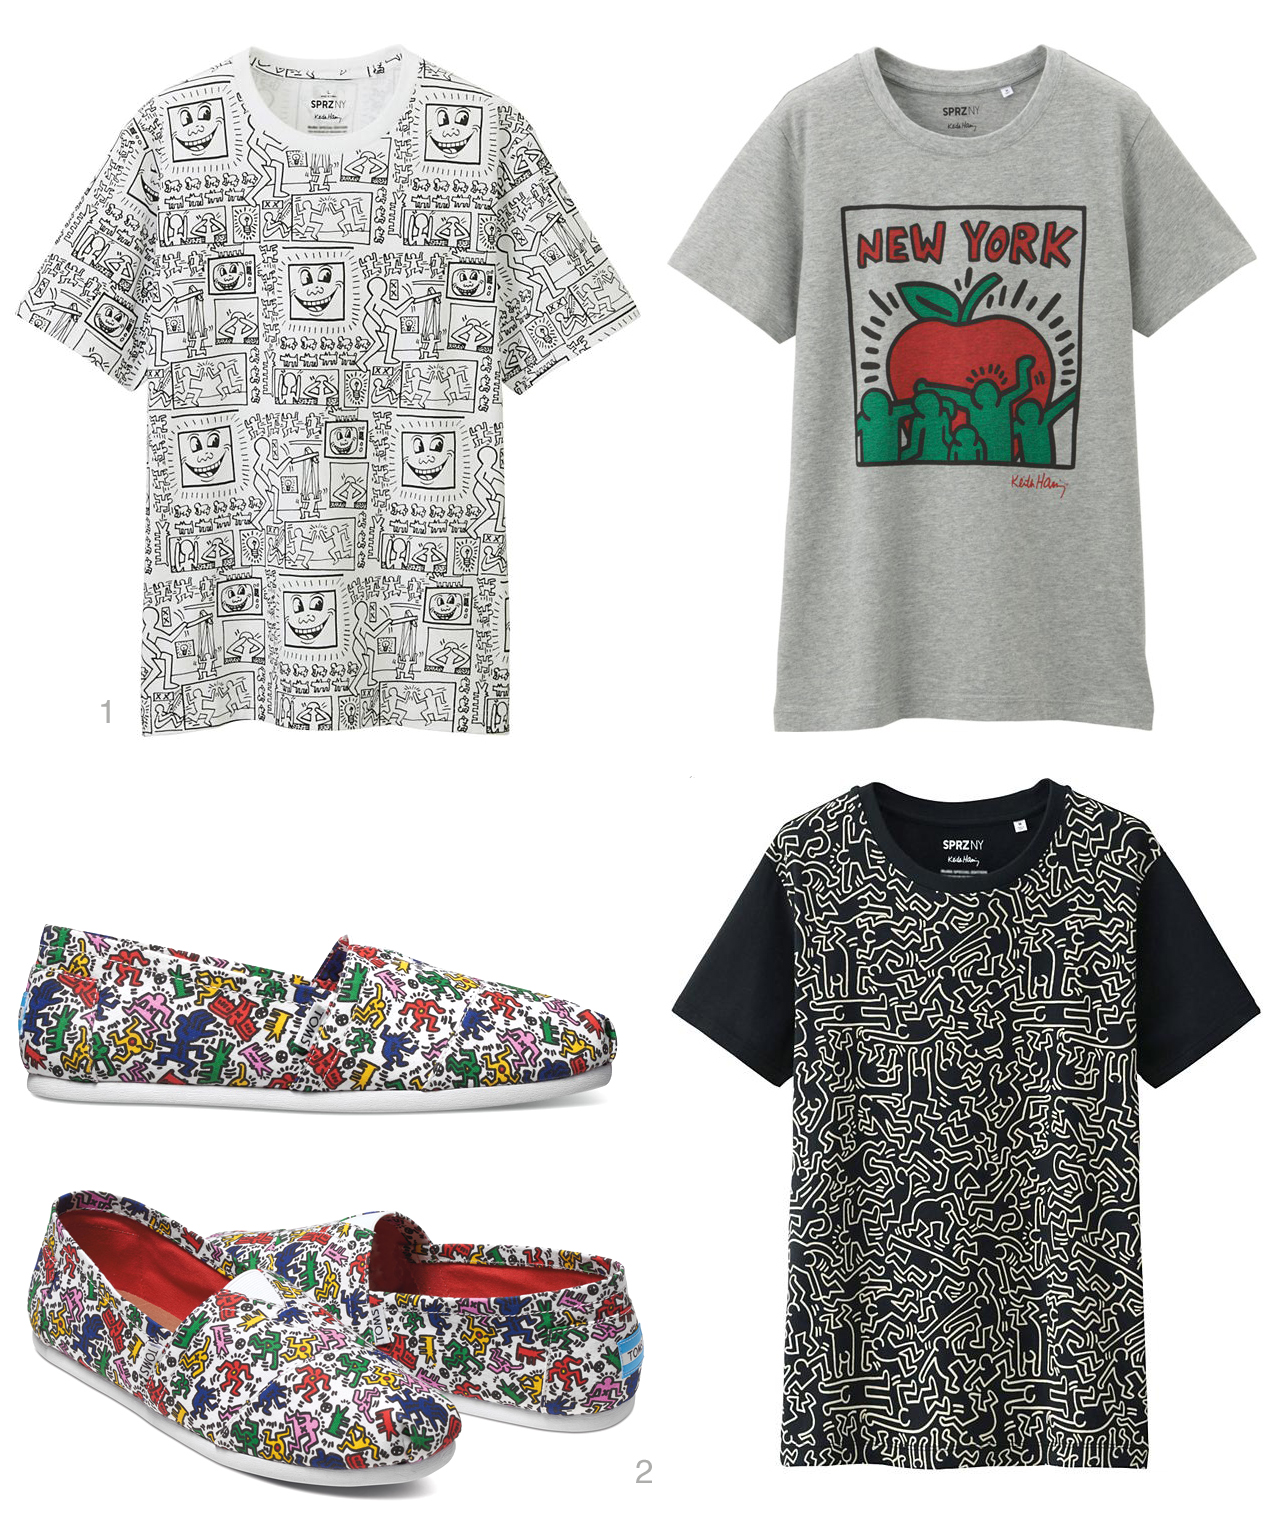 keith-haring-toms-uniqlo